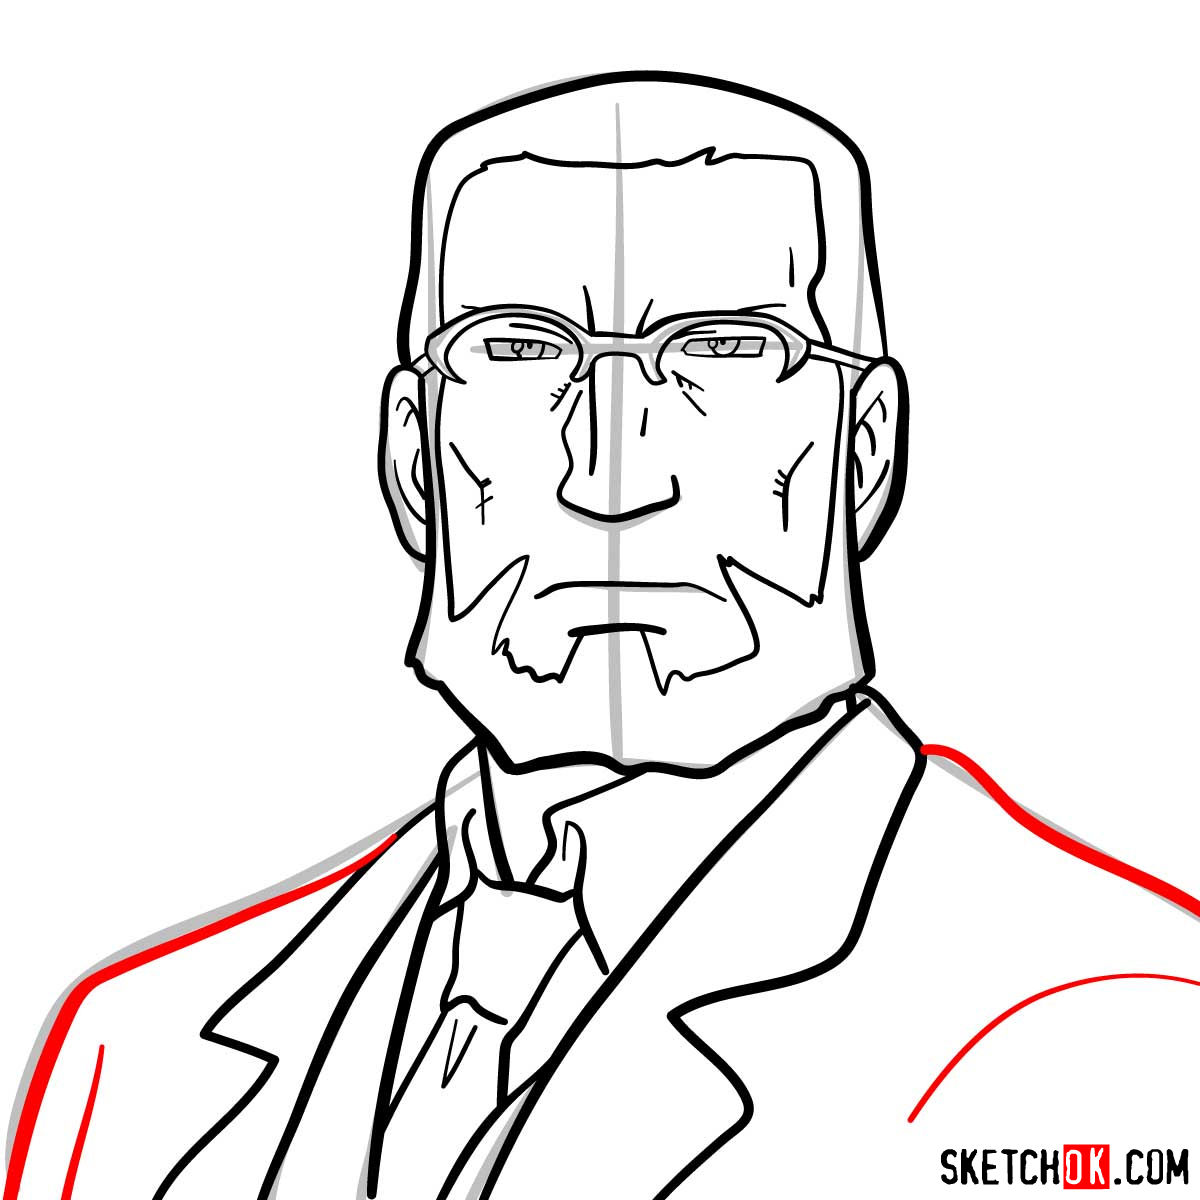 How to draw Van Hohenheim from Fullmetal Alchemist anime - step 09